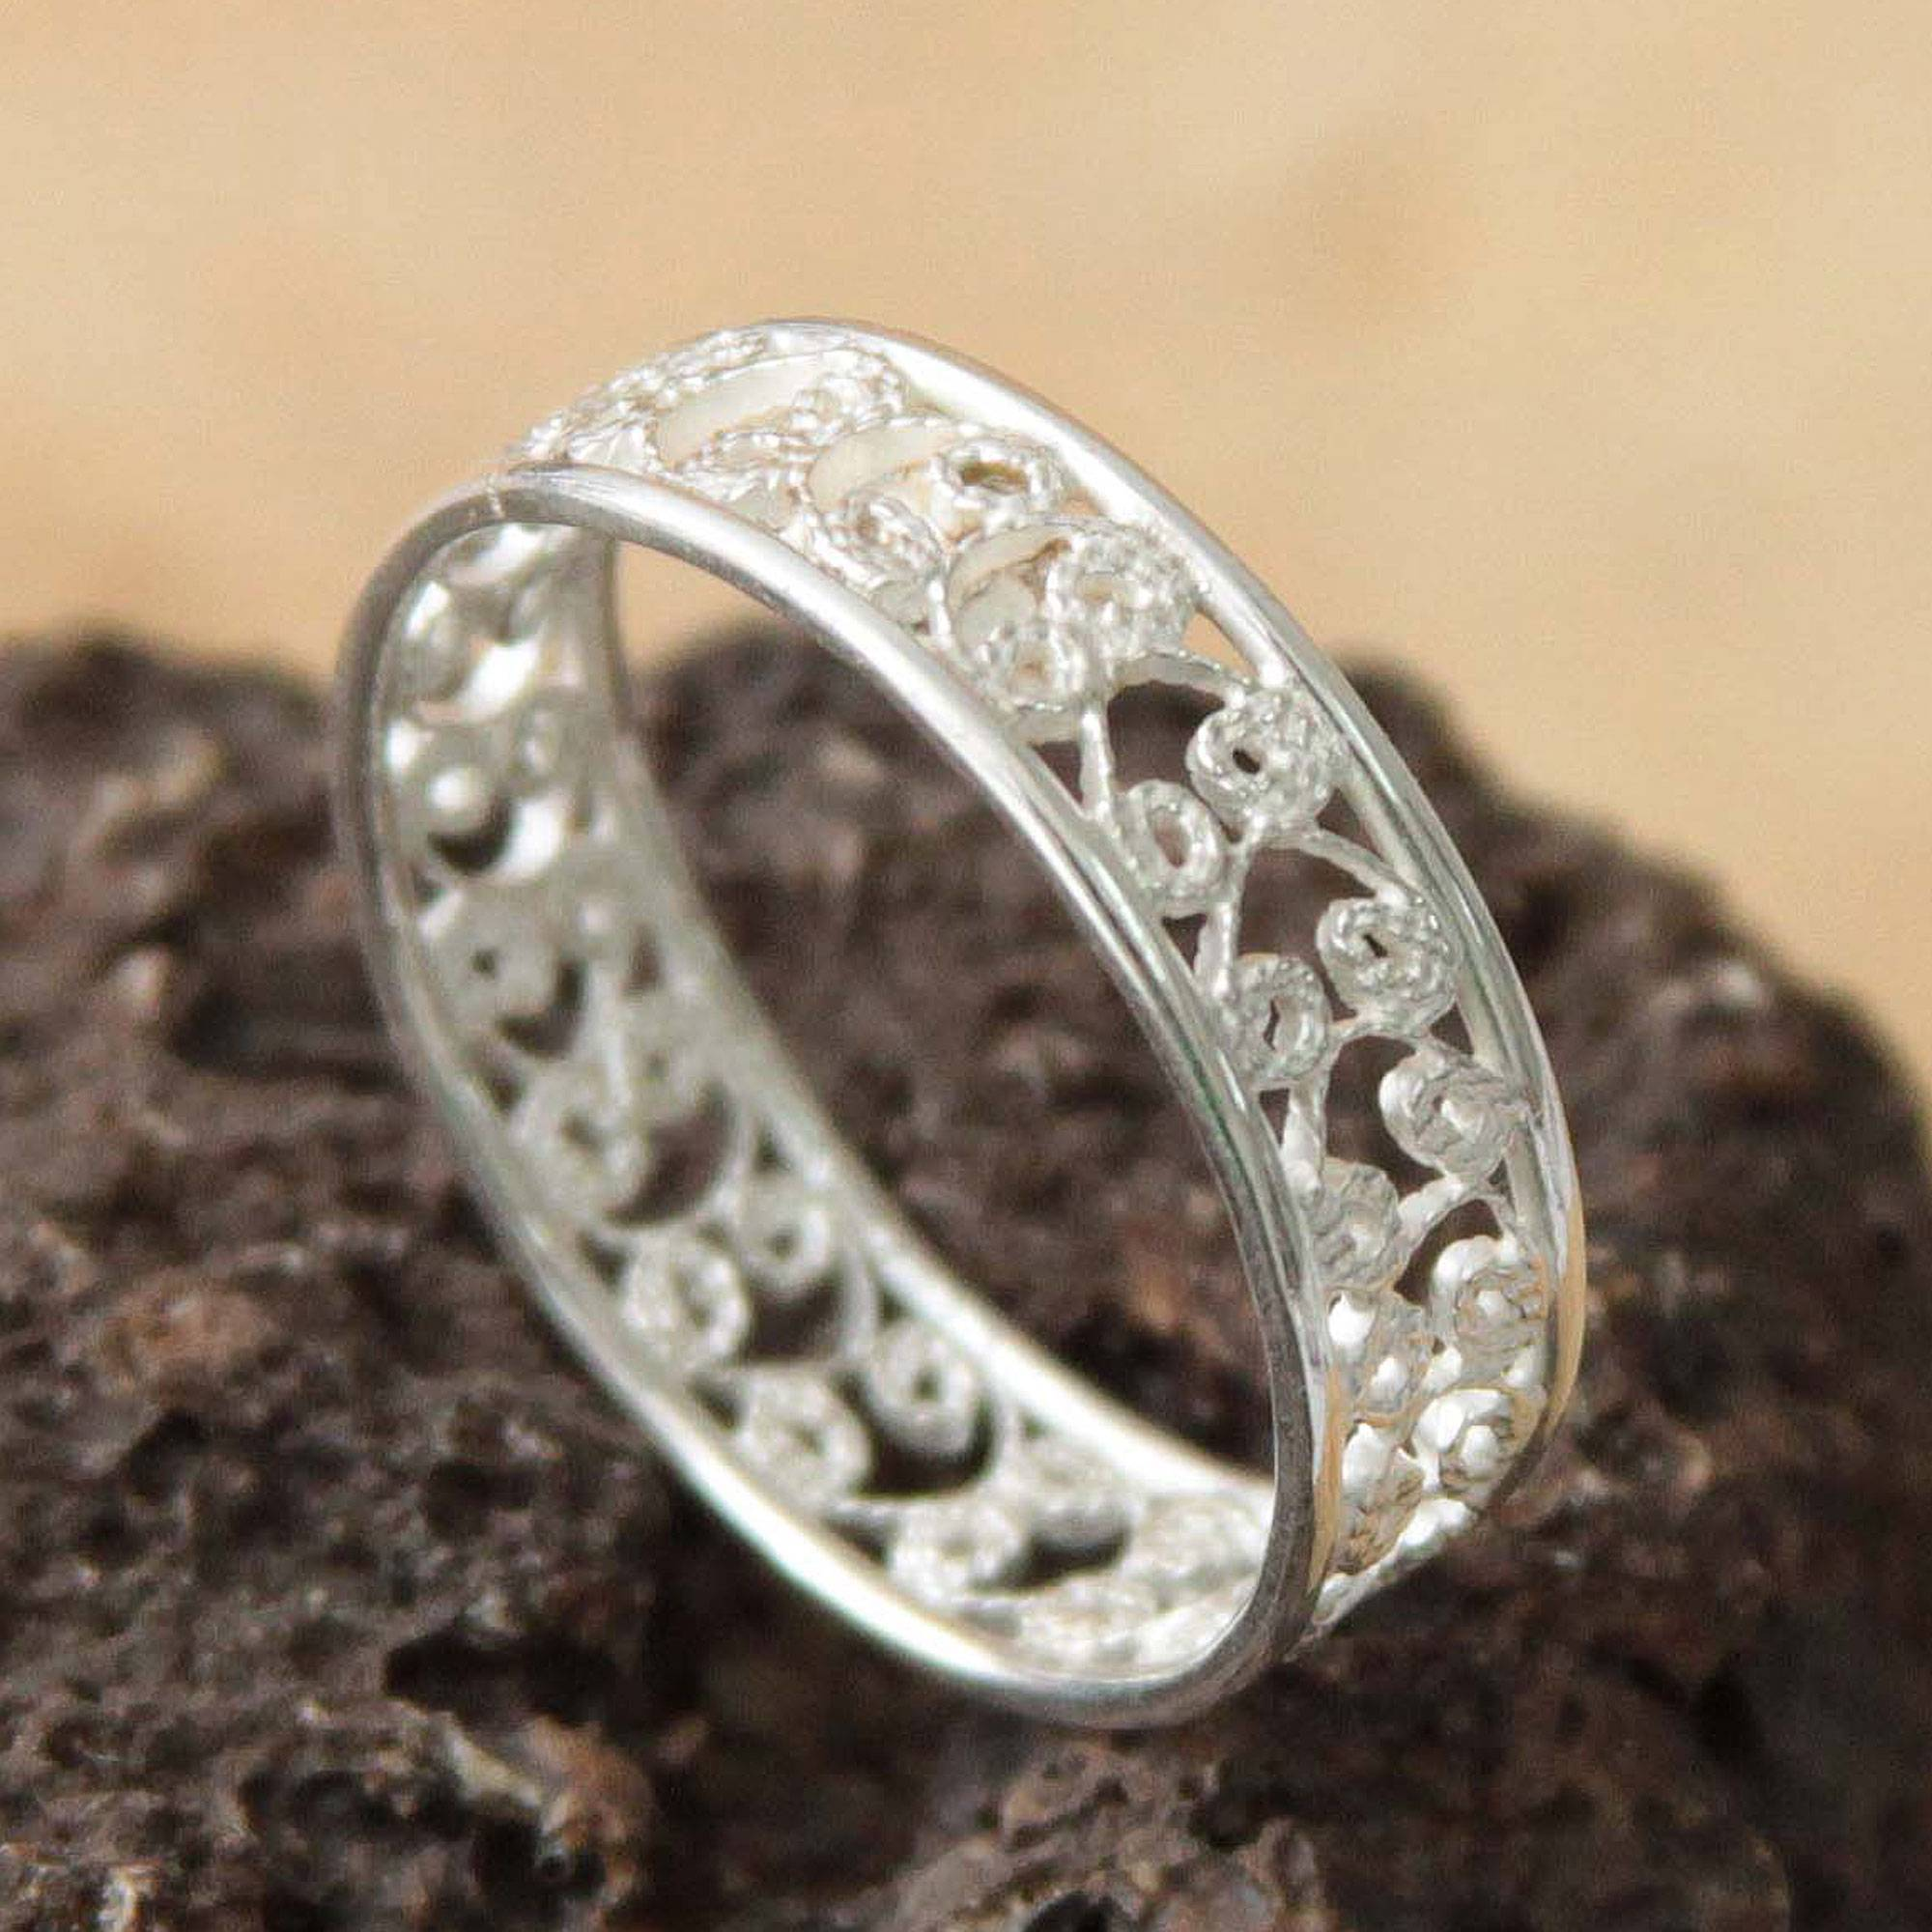 eternity pin statement filigree silver jewelry bands stacking ring band ornate engagement vogue trendy wedding wide authentic